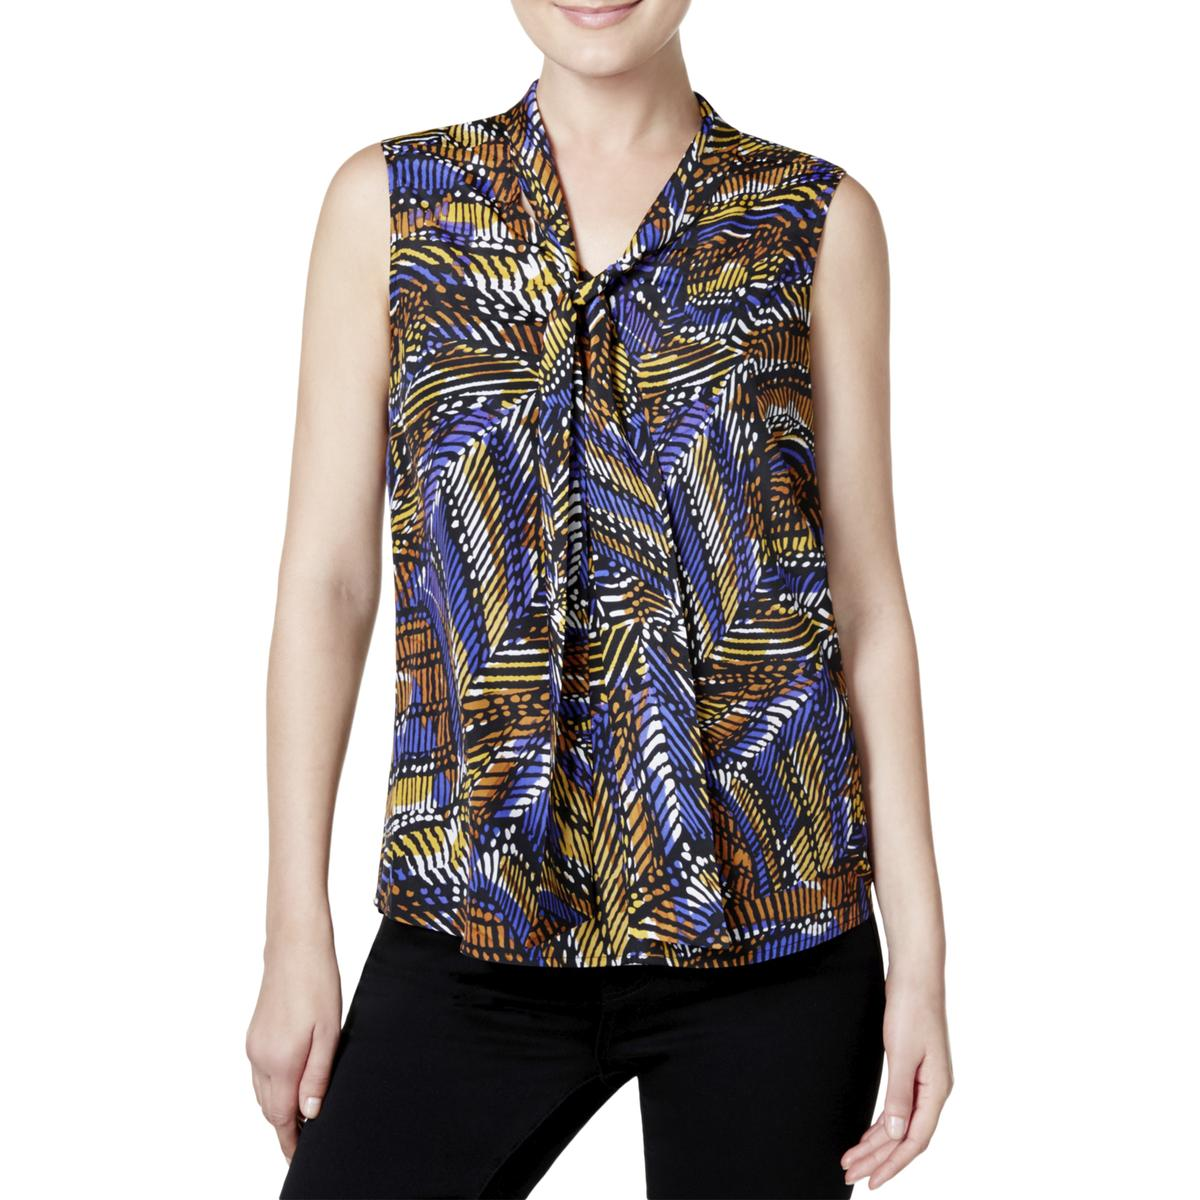 e83206ecd1750 Details about Kasper Womens Printed Tie-Neck Sleeveless Blouse Top BHFO 8481